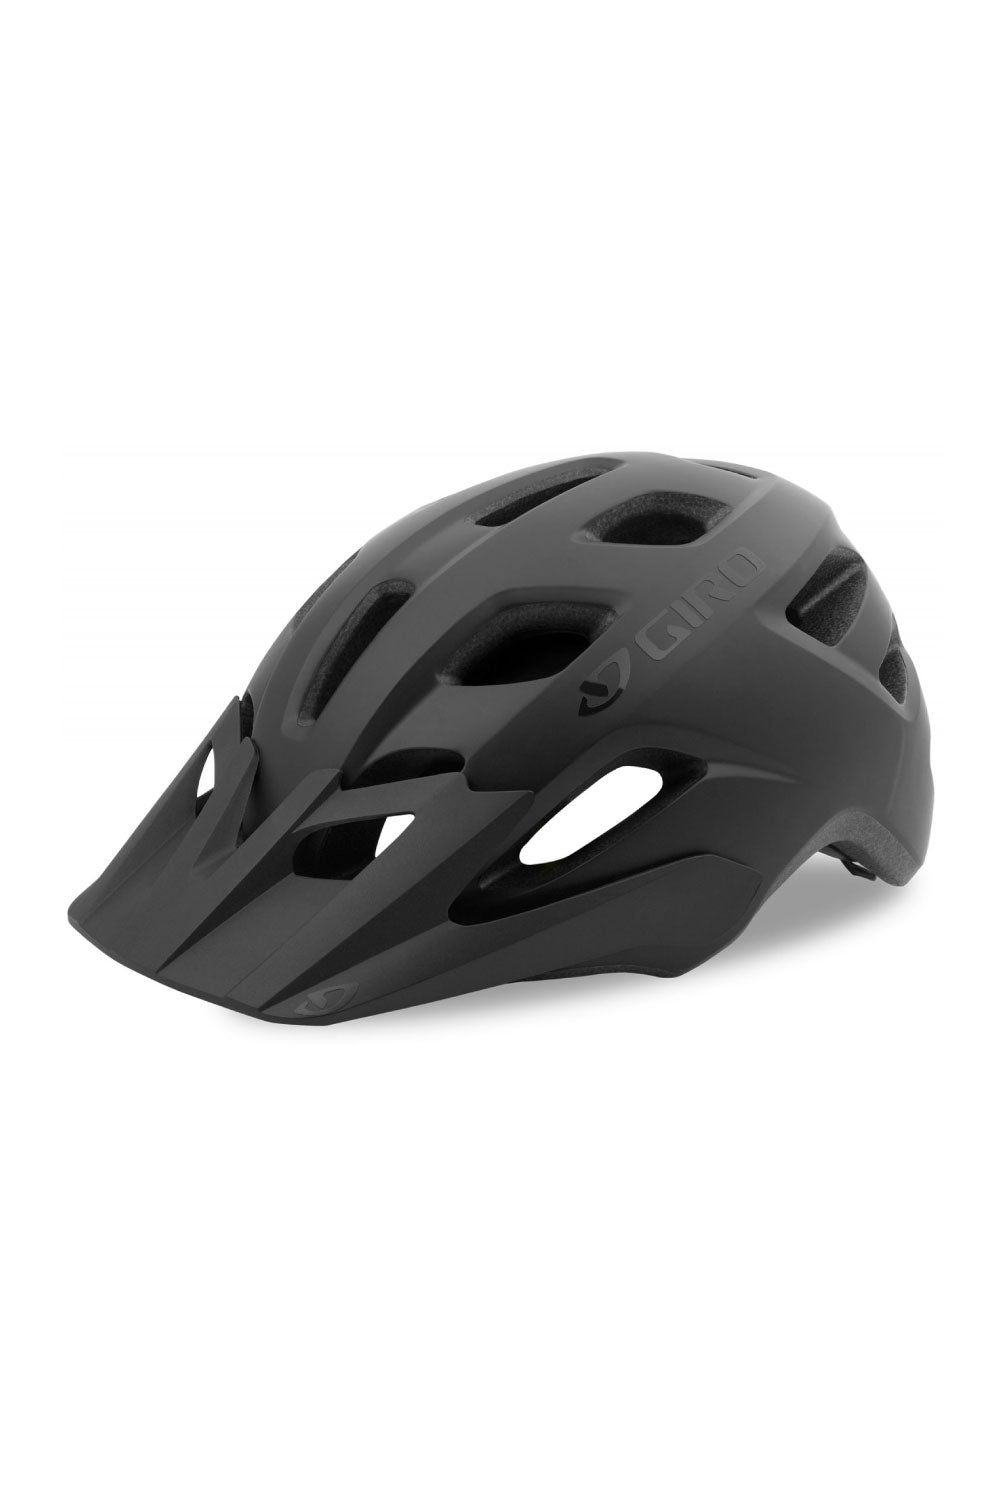 GIRO Compound Adult Mountain Bike Helmet